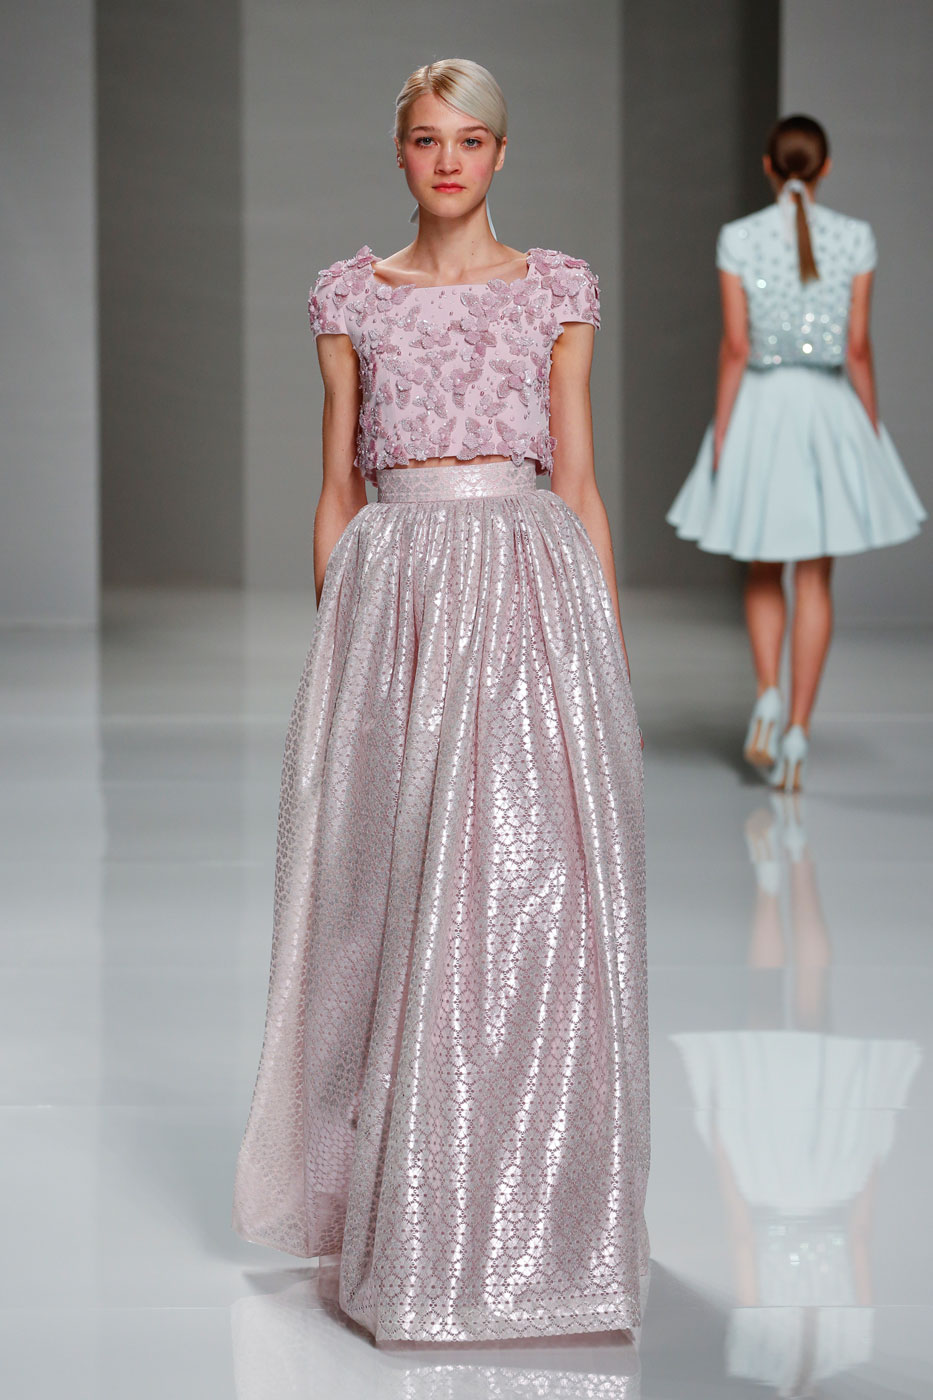 Georges-Hobeika-fashion-runway-show-haute-couture-paris-spring-2015-the-impression-13